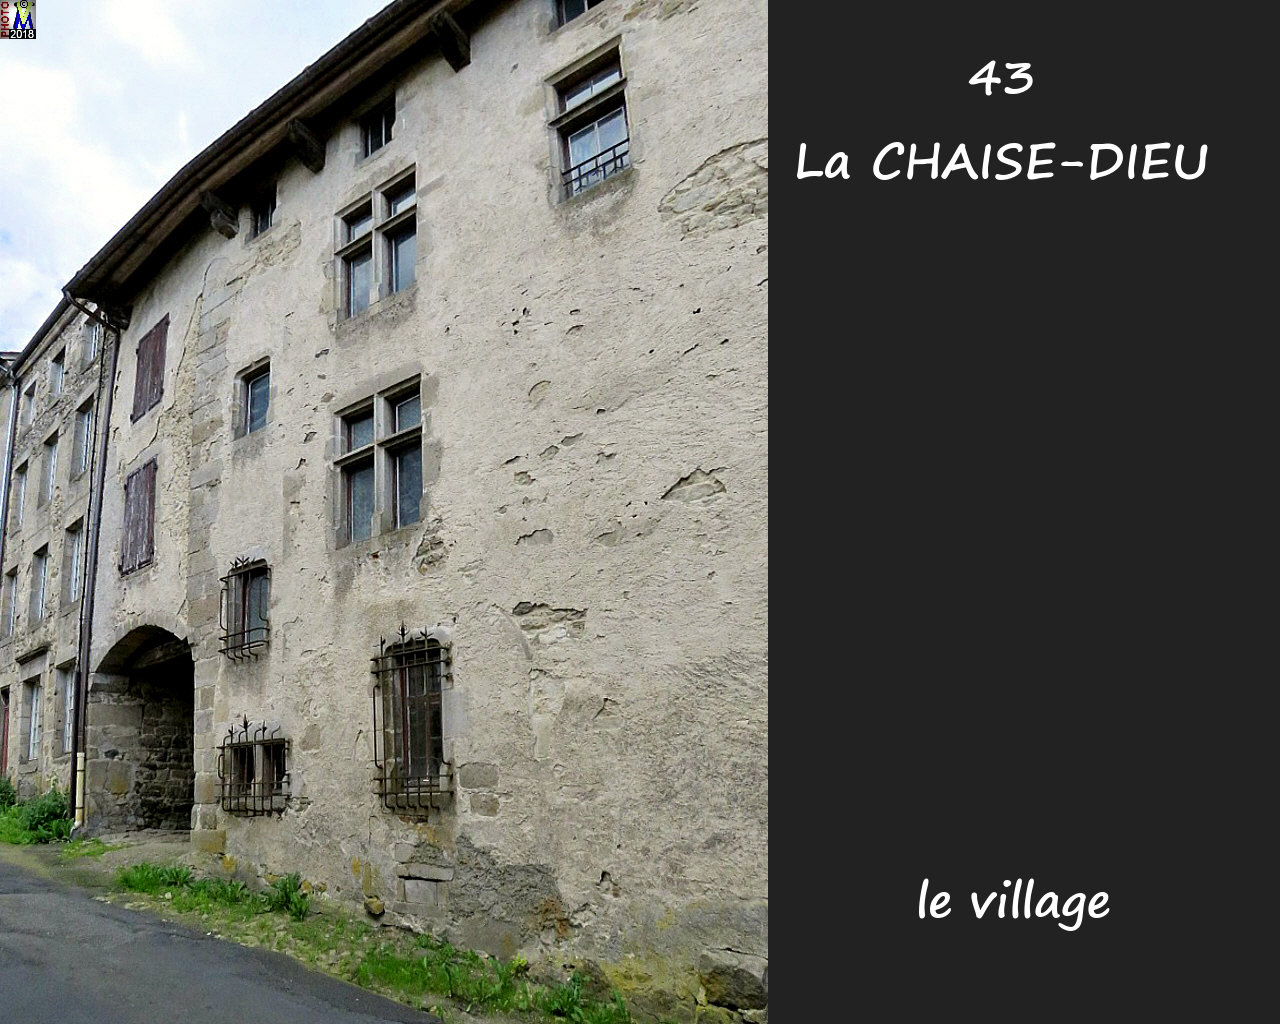 43CHAISE-DIEU_village_134.jpg